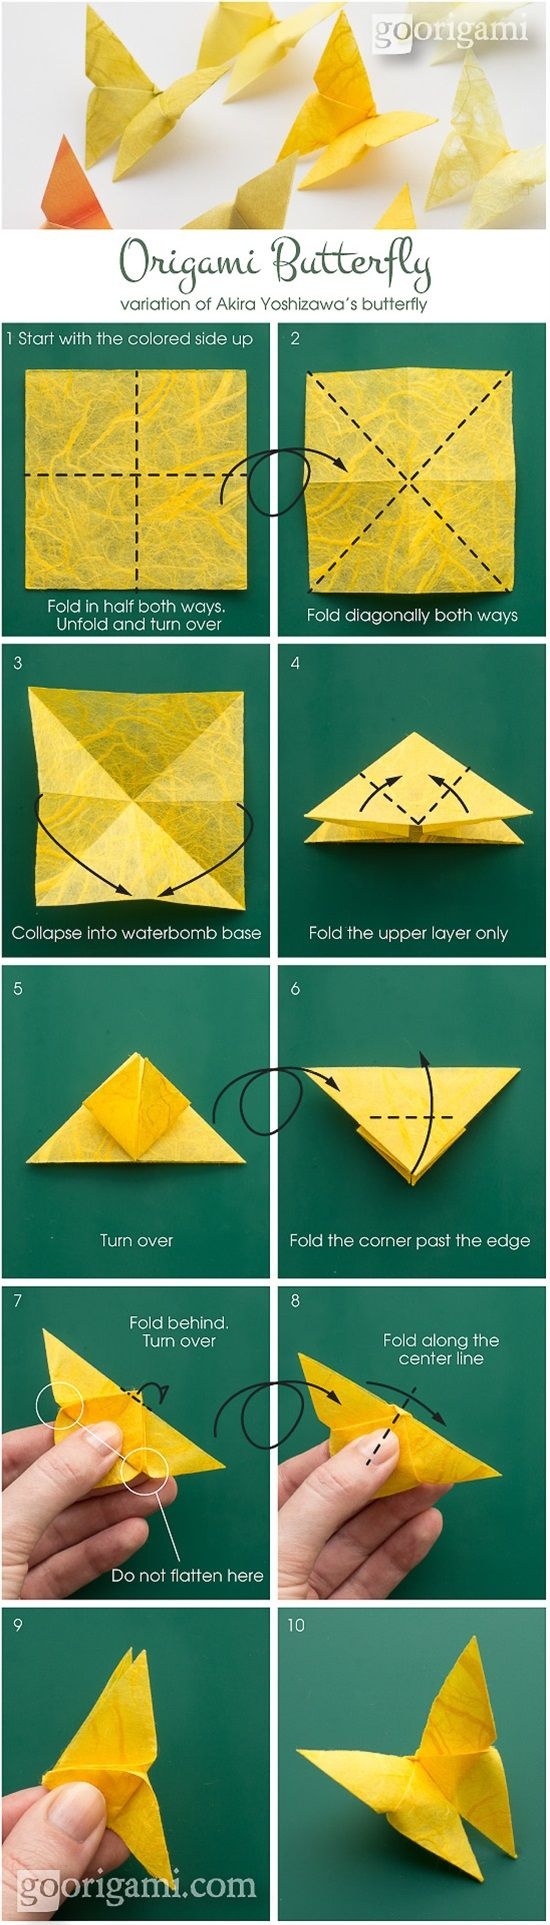 15 Easy Origami Tutorials For Anyone To Follow | Postris